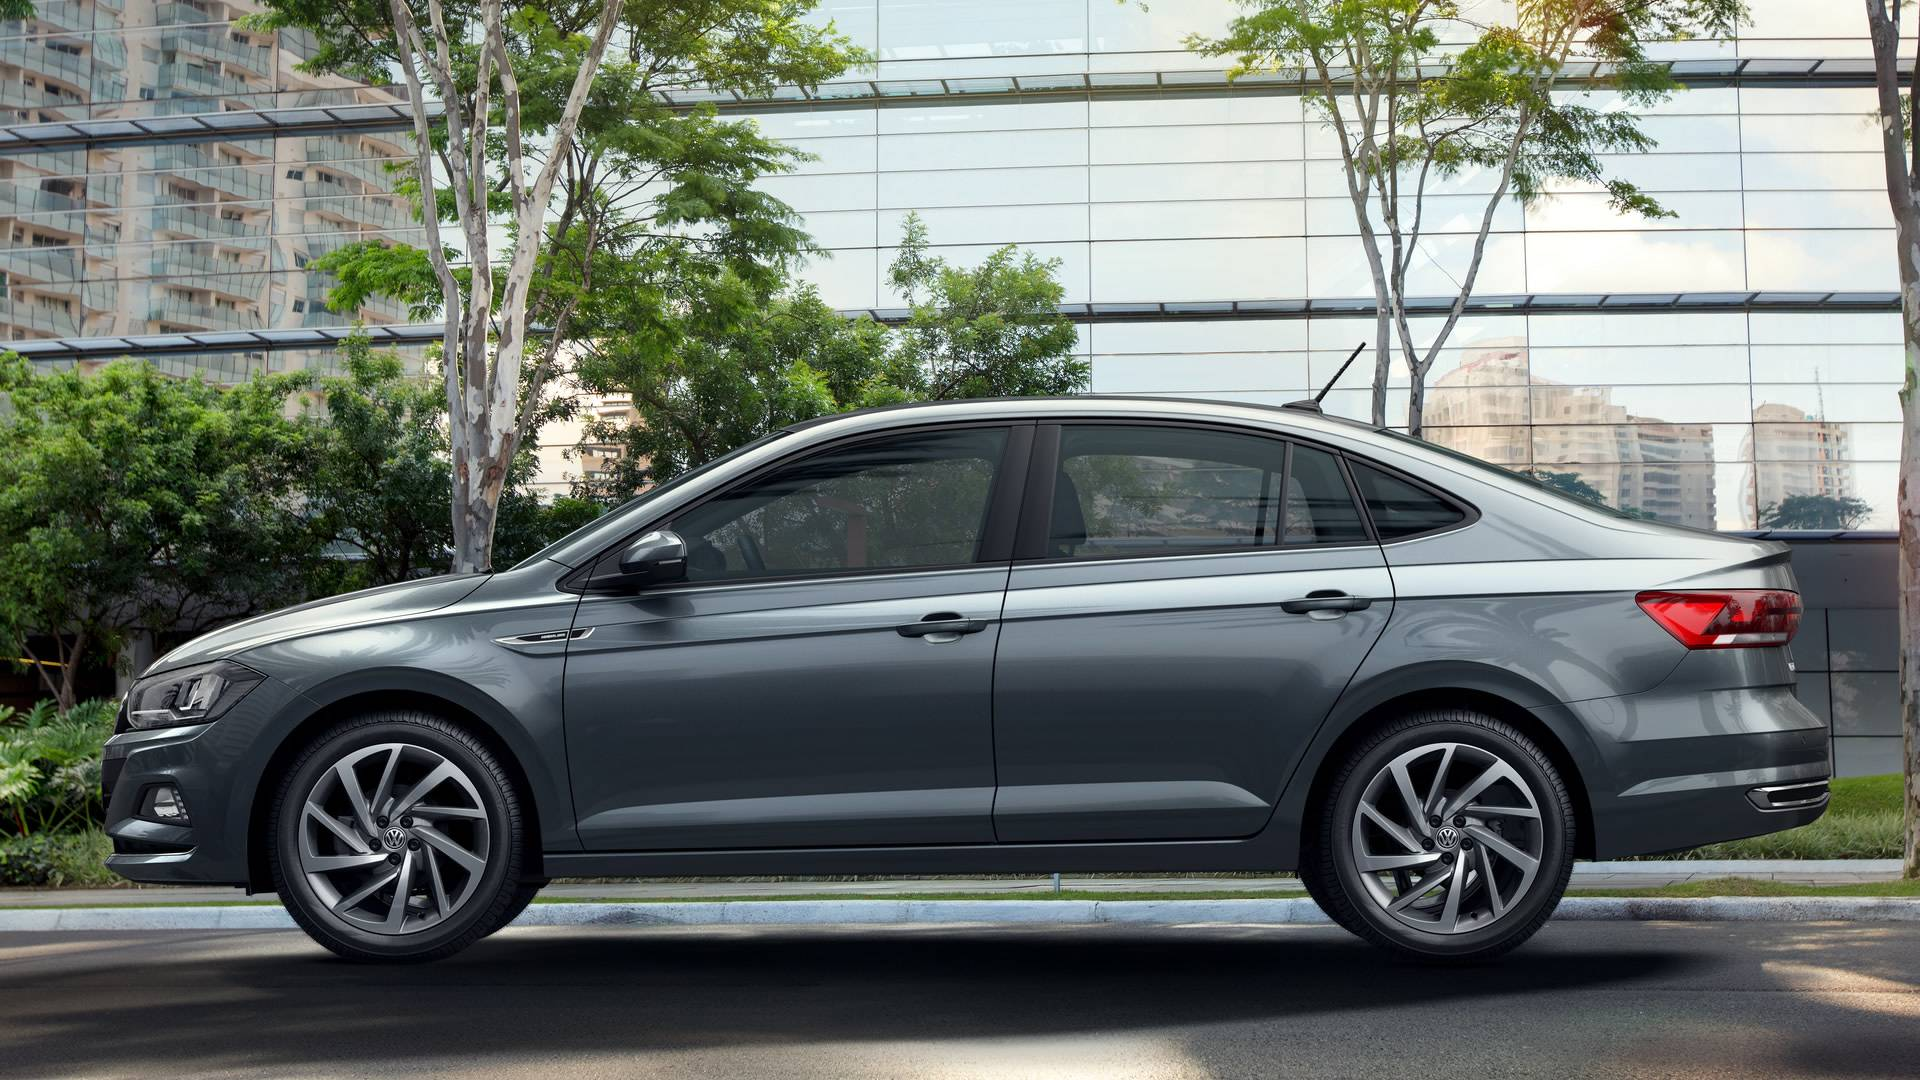 2018 Volkswagen Virtus Revealed To Replace Vento In India